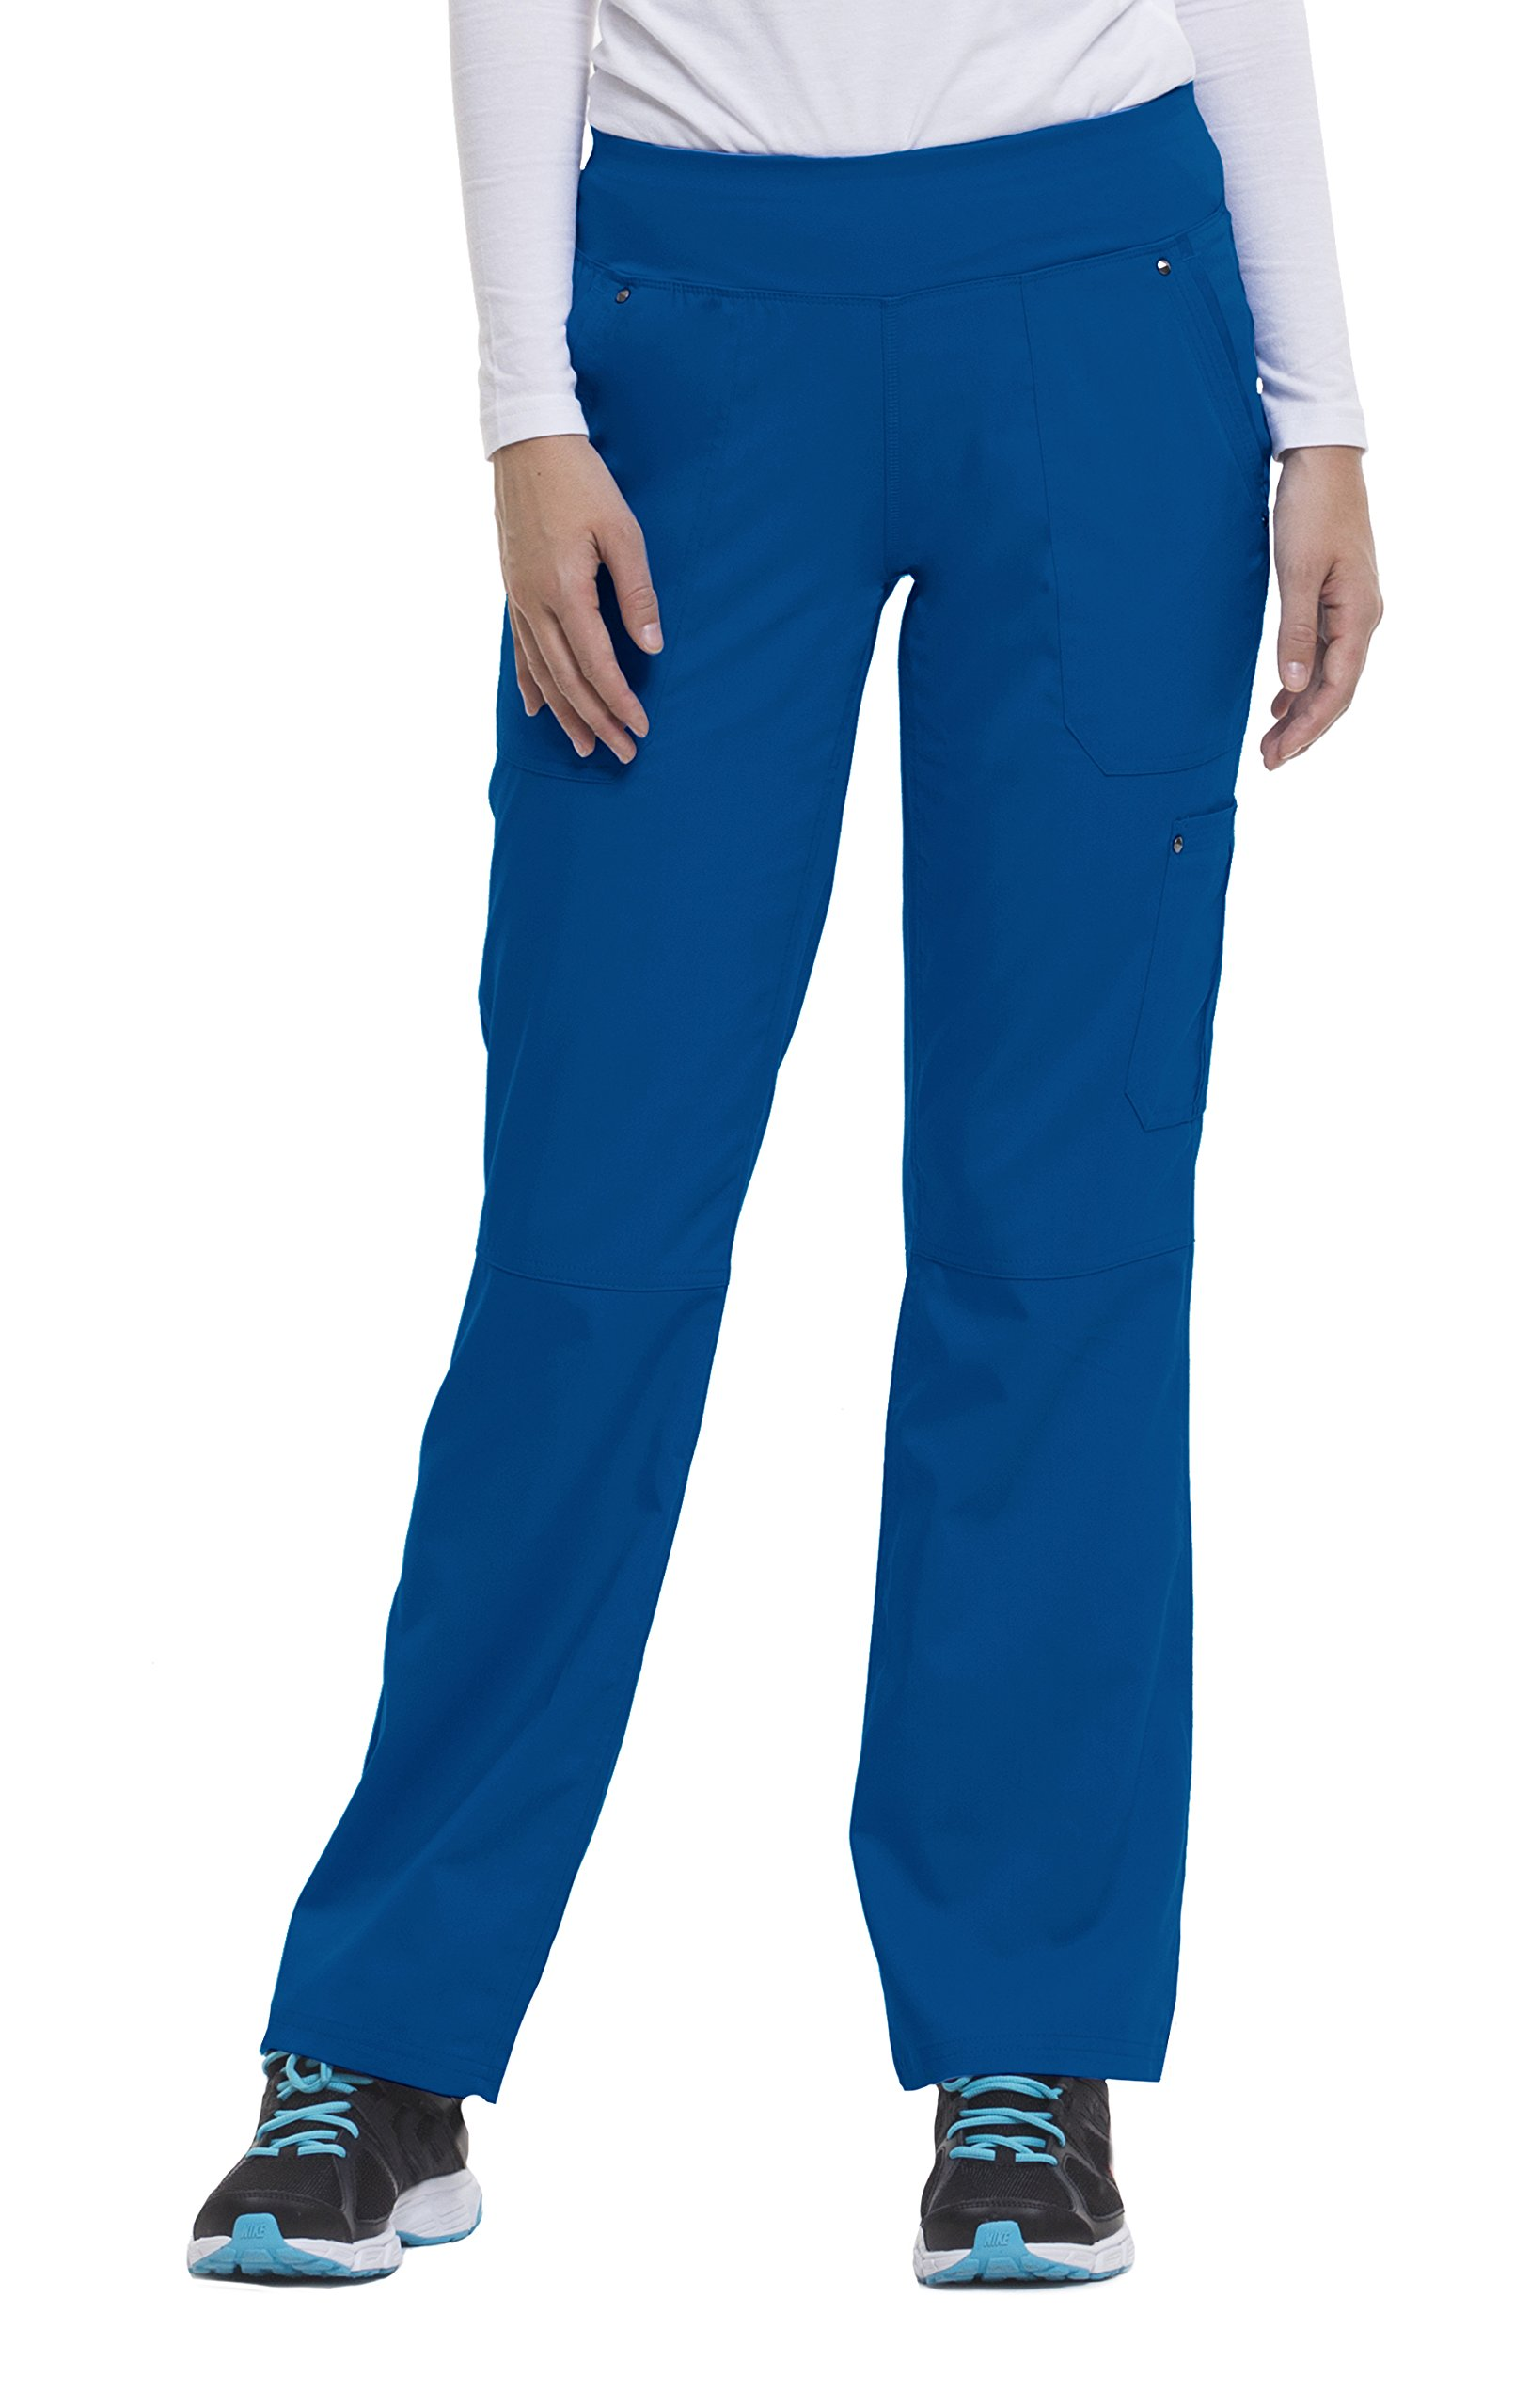 Purple Label Yoga Women's Tori 9133 5 Pocket Knit Waist Pant by Healing Hands Scrubs- Royal Blue- Large